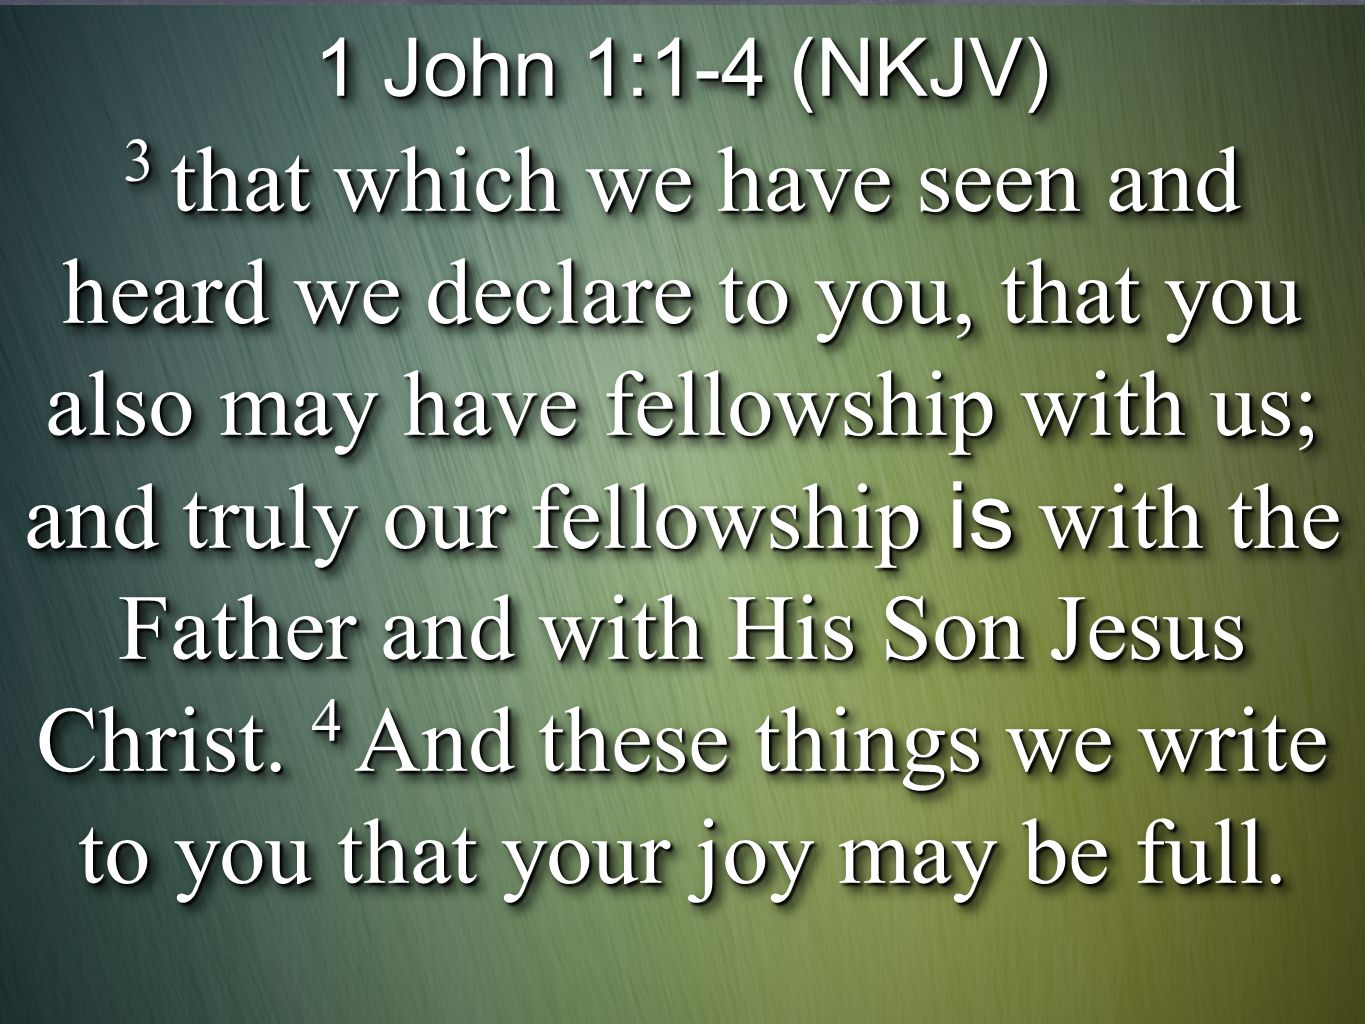 1 John 1:1-4 (NKJV) 3 that which we have seen and heard we declare to you, that you also may have fellowship with us; and truly our fellowship is with the Father and with His Son Jesus Christ.